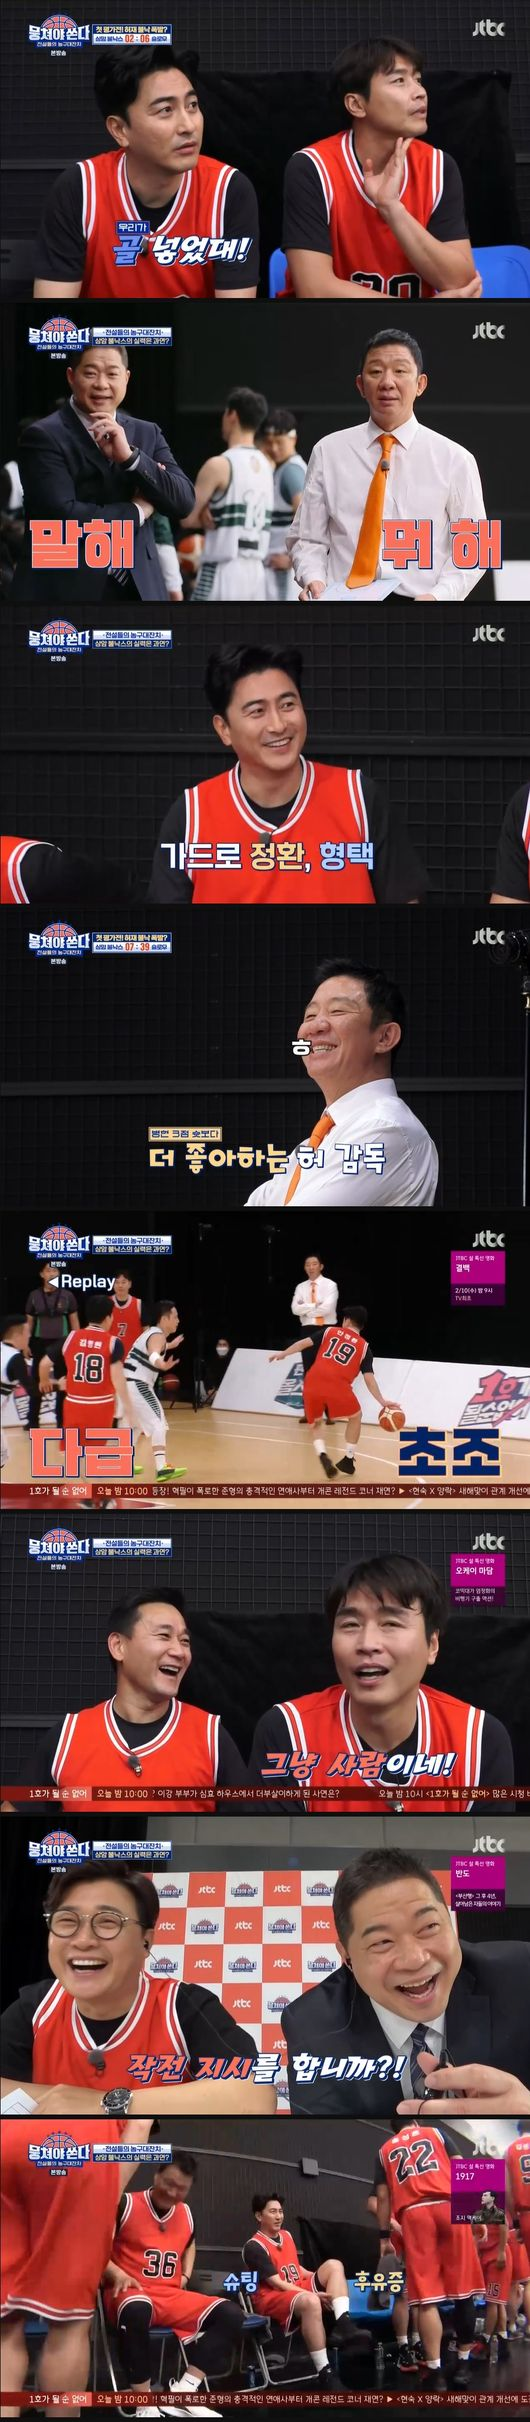 """Lee Dong-guk """"Ahn Jung-hwan, just a commoner because he plays basketball""""… New director Heo Jae,'panic' in his first evaluation match [Oh!쎈 종합]"""